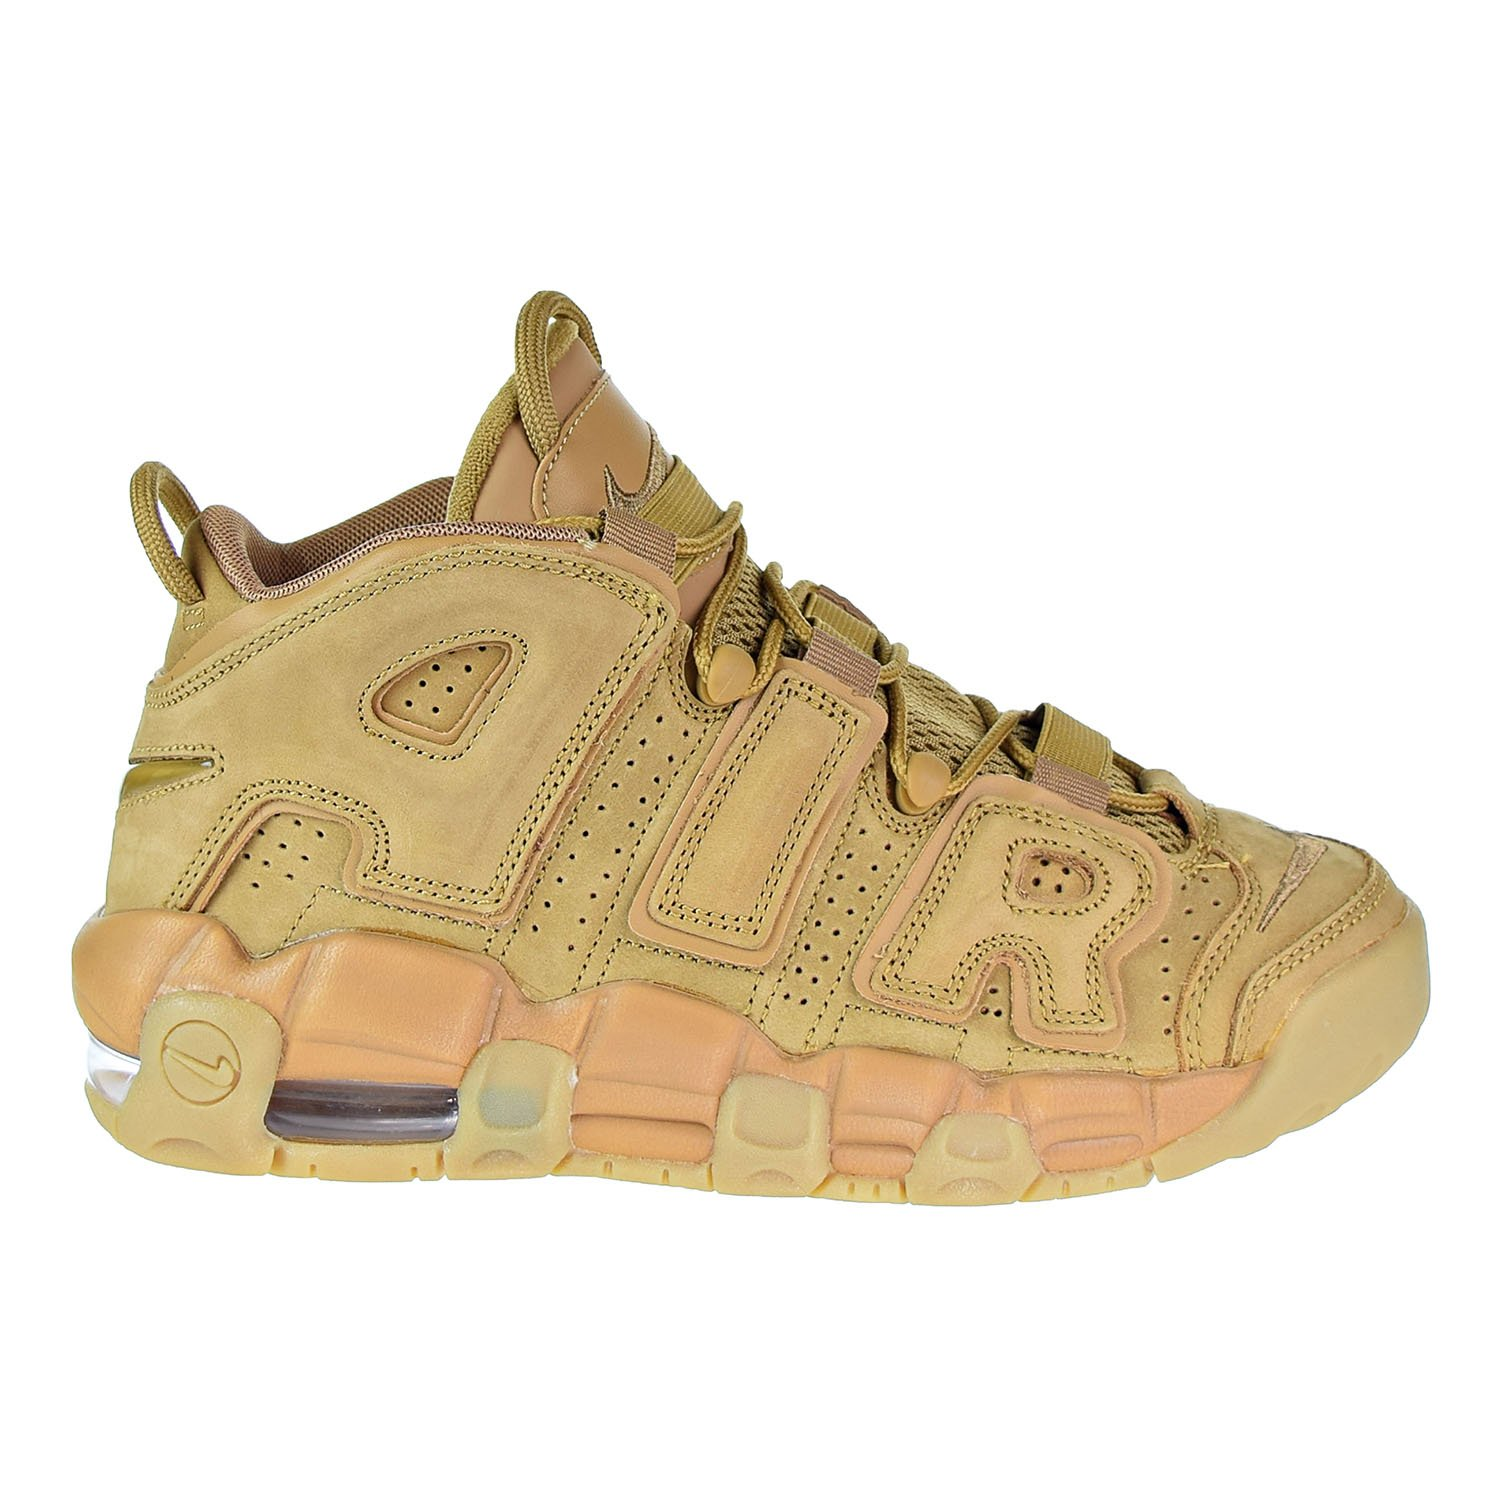 Nike Air More Uptempo SE (GS) - 922845-200 -  4